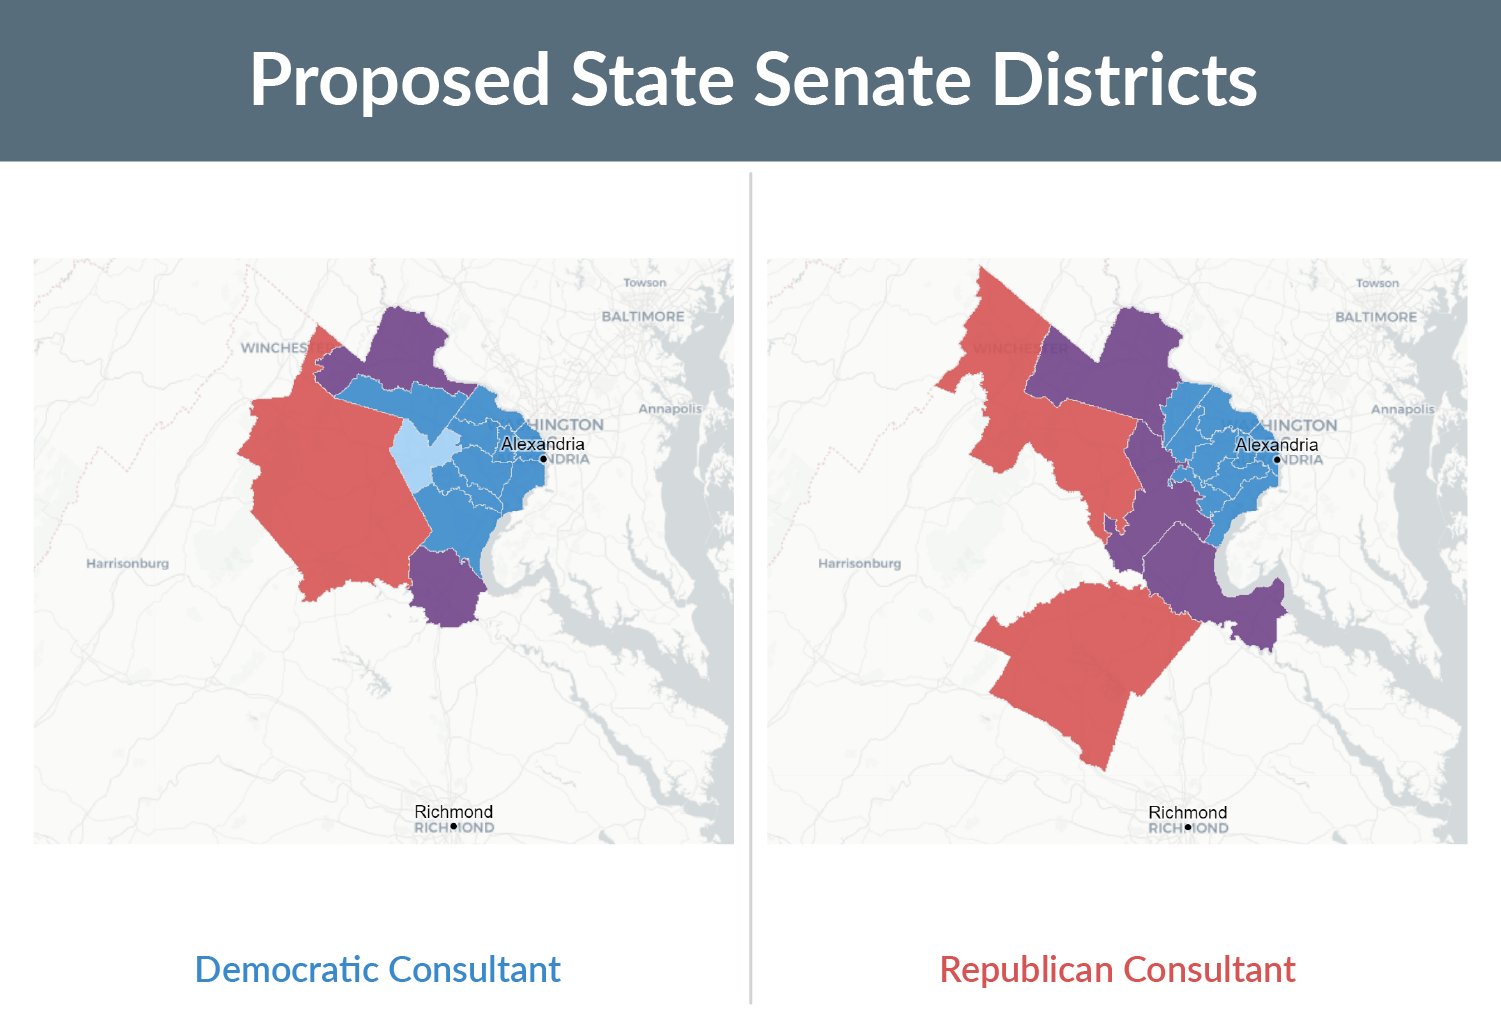 Two maps showing the proposed State Senate districts and political lean drawn by the Virginia Redistricting Commission's Democratic and Republican consultants. Strong Democratic is shown in dark blue, Leans Republican is shown in light red, and Strong Republican is shown in dark red.